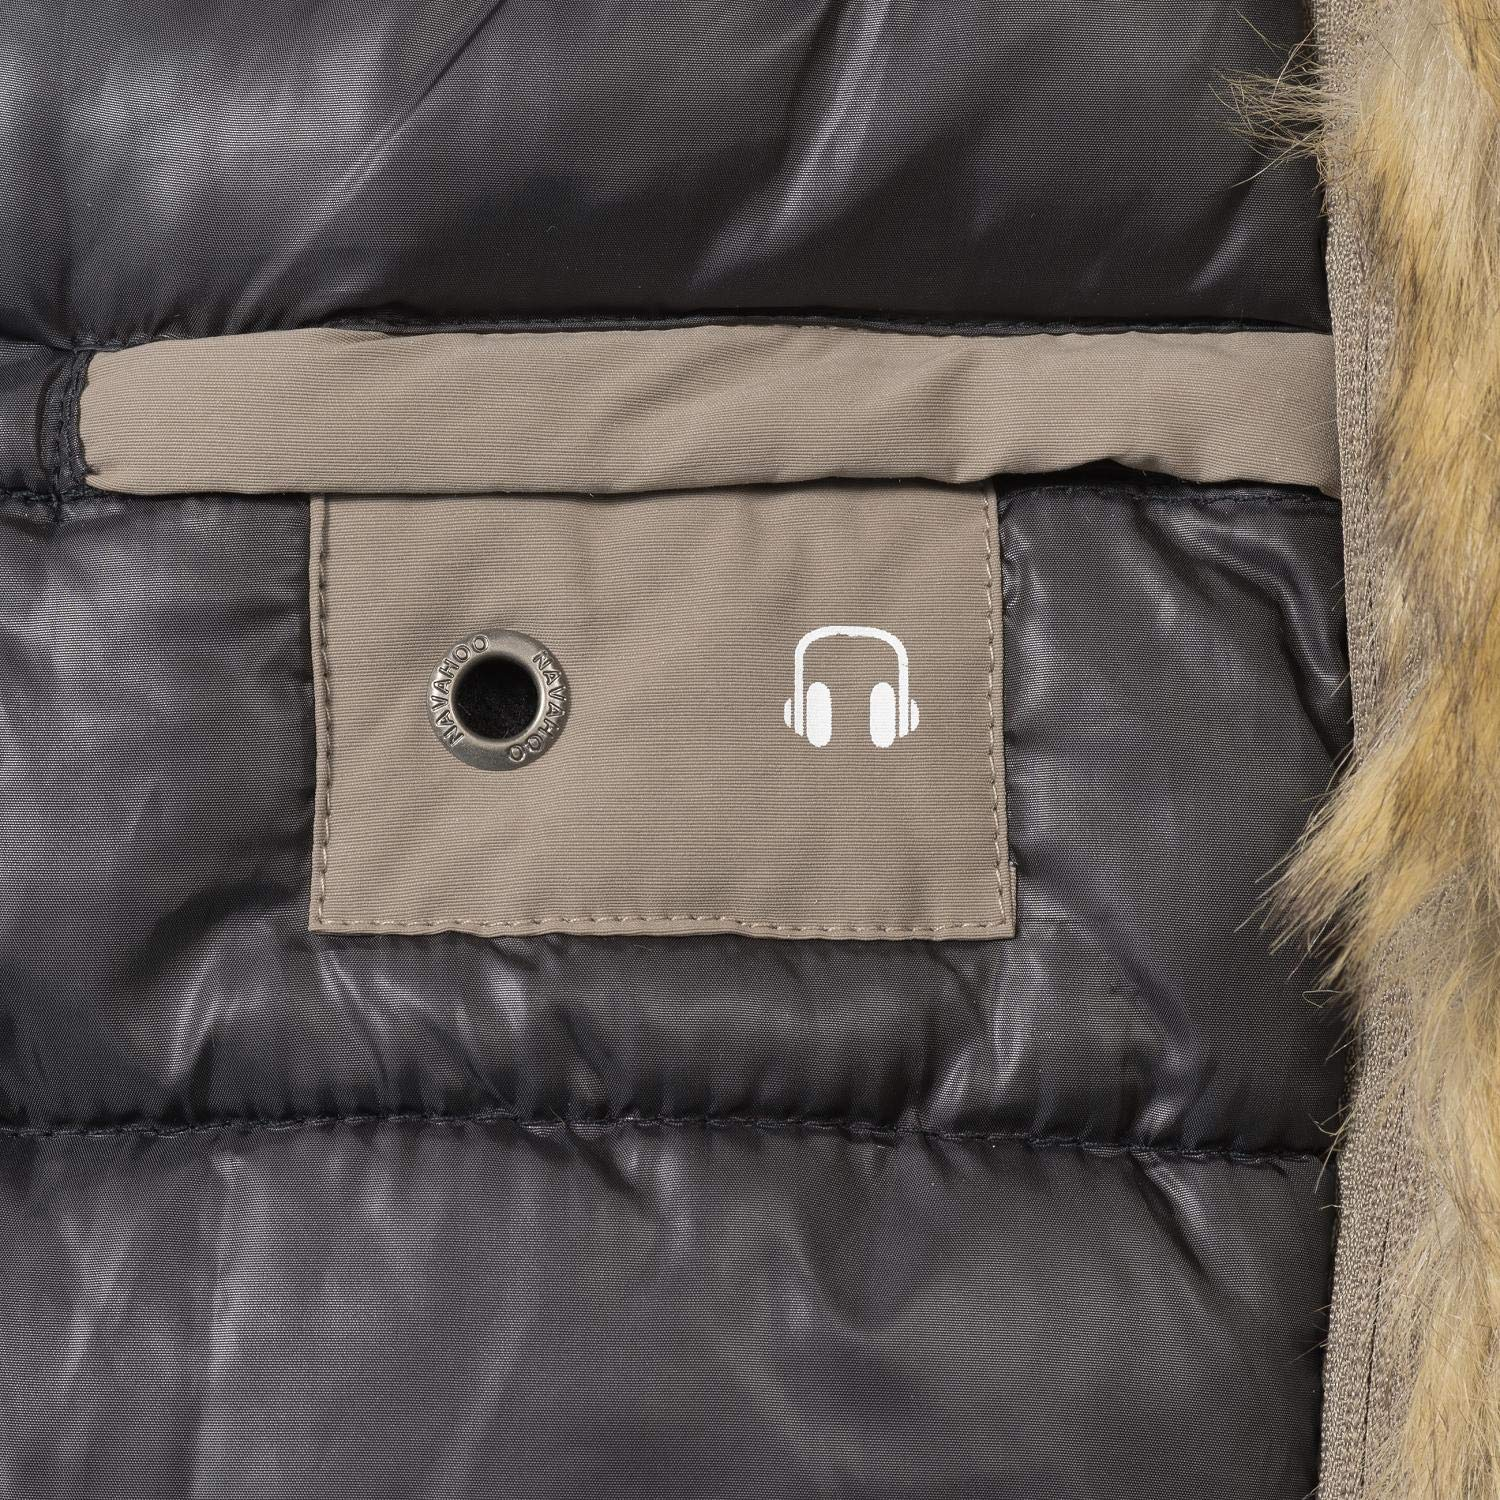 Navahoo Sweety Veste d'hiver Parka pour Dame 2in1 9 Couleurs XS-XXL Taupe Mit Braunem Fell